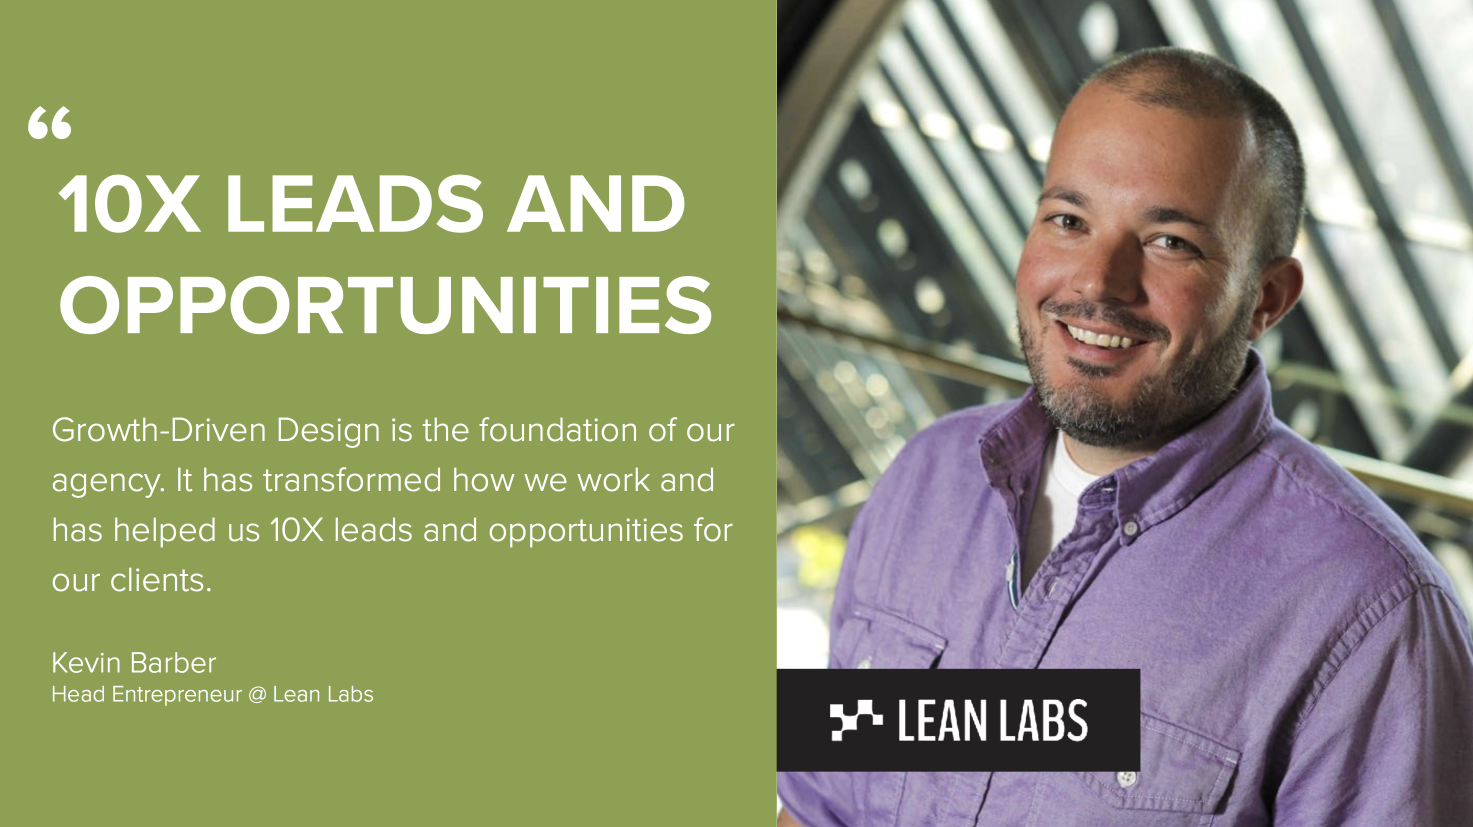 leanlabs-gdd.png